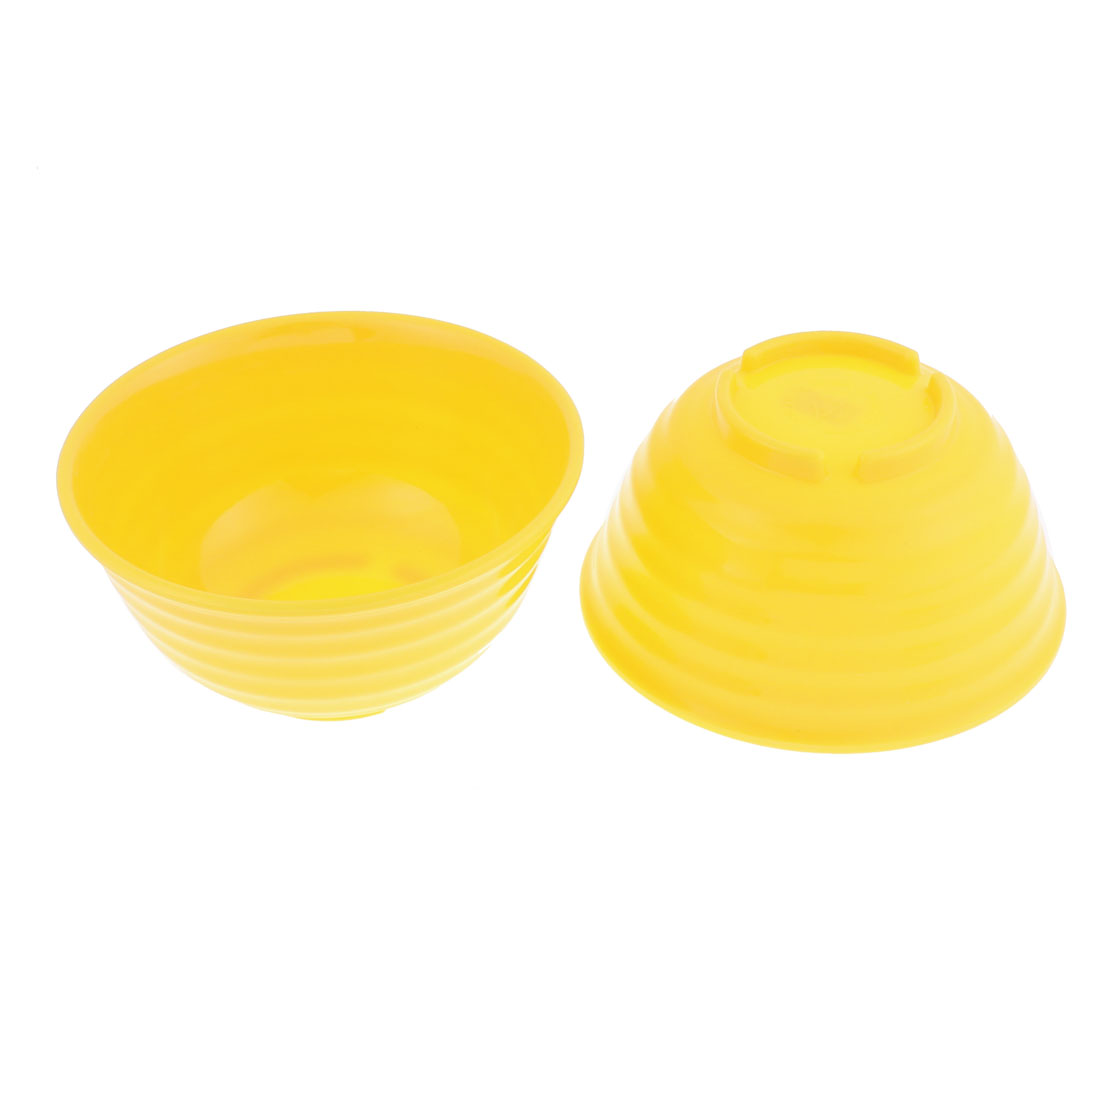 Household Plastic Salad Soup Dinner Rice Bowl Yellow 5.5 Inch Dia 2 Pcs